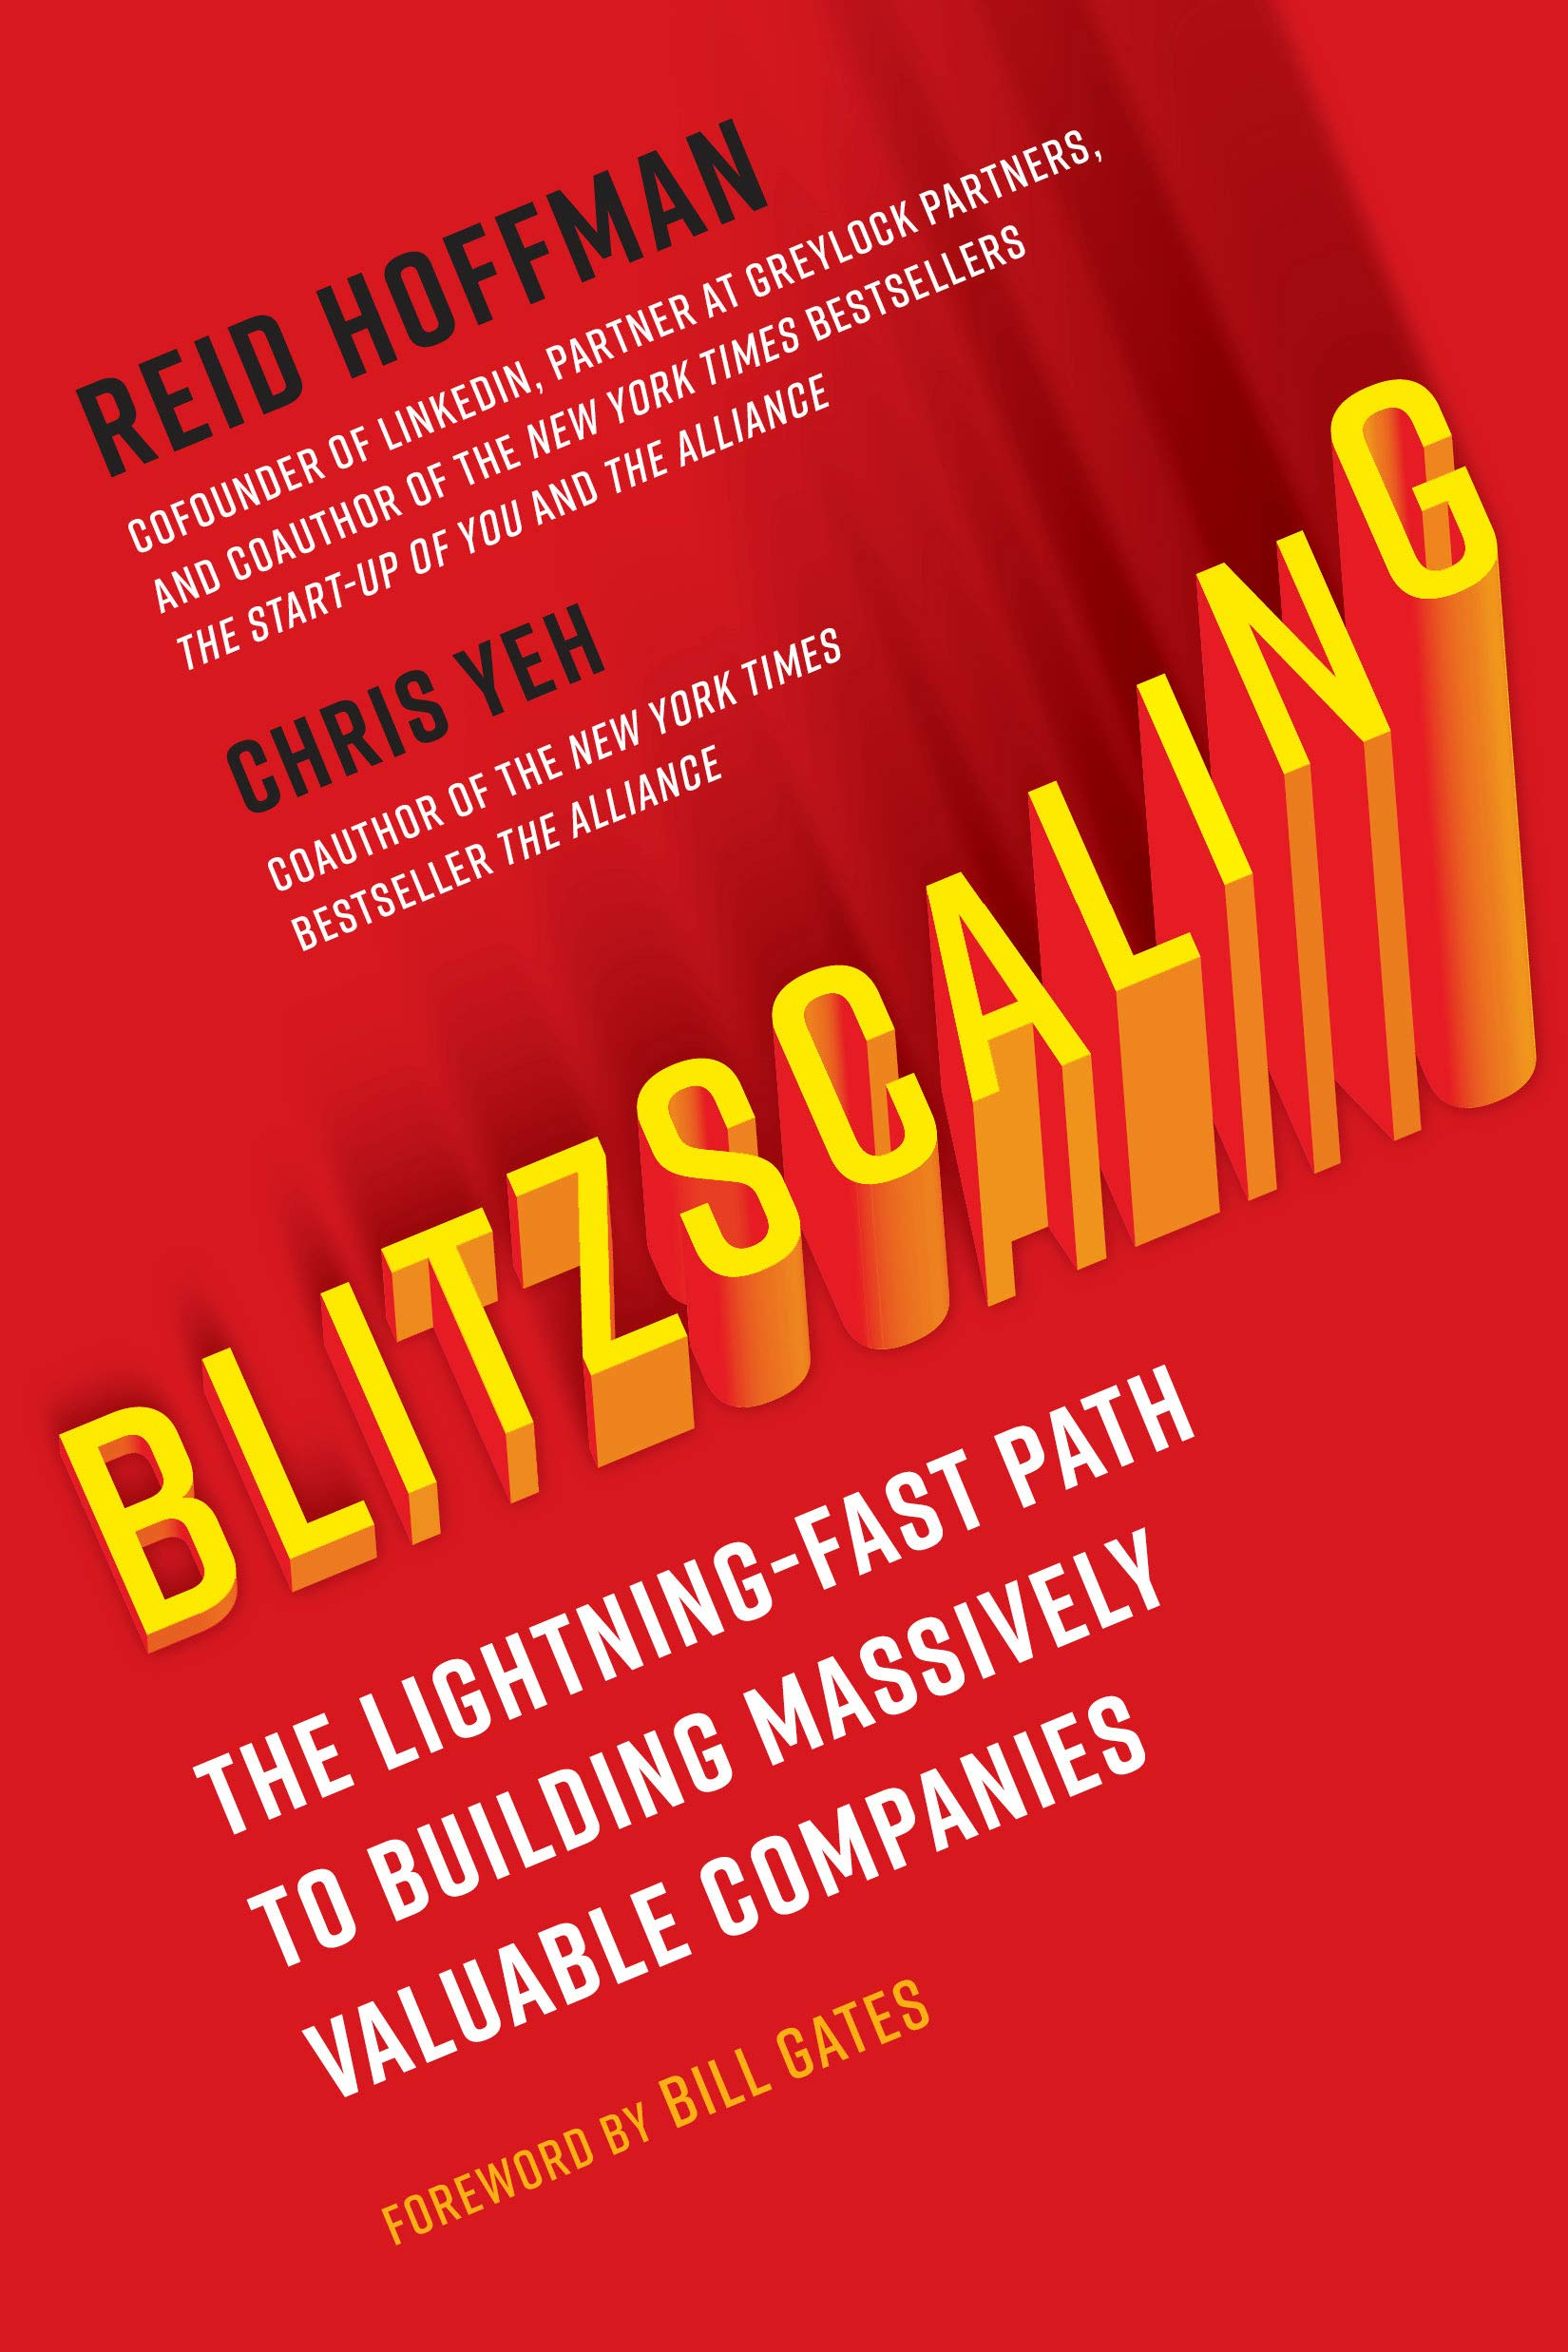 Blitzscaling - The Lightning Fast path to building massively valuable companies